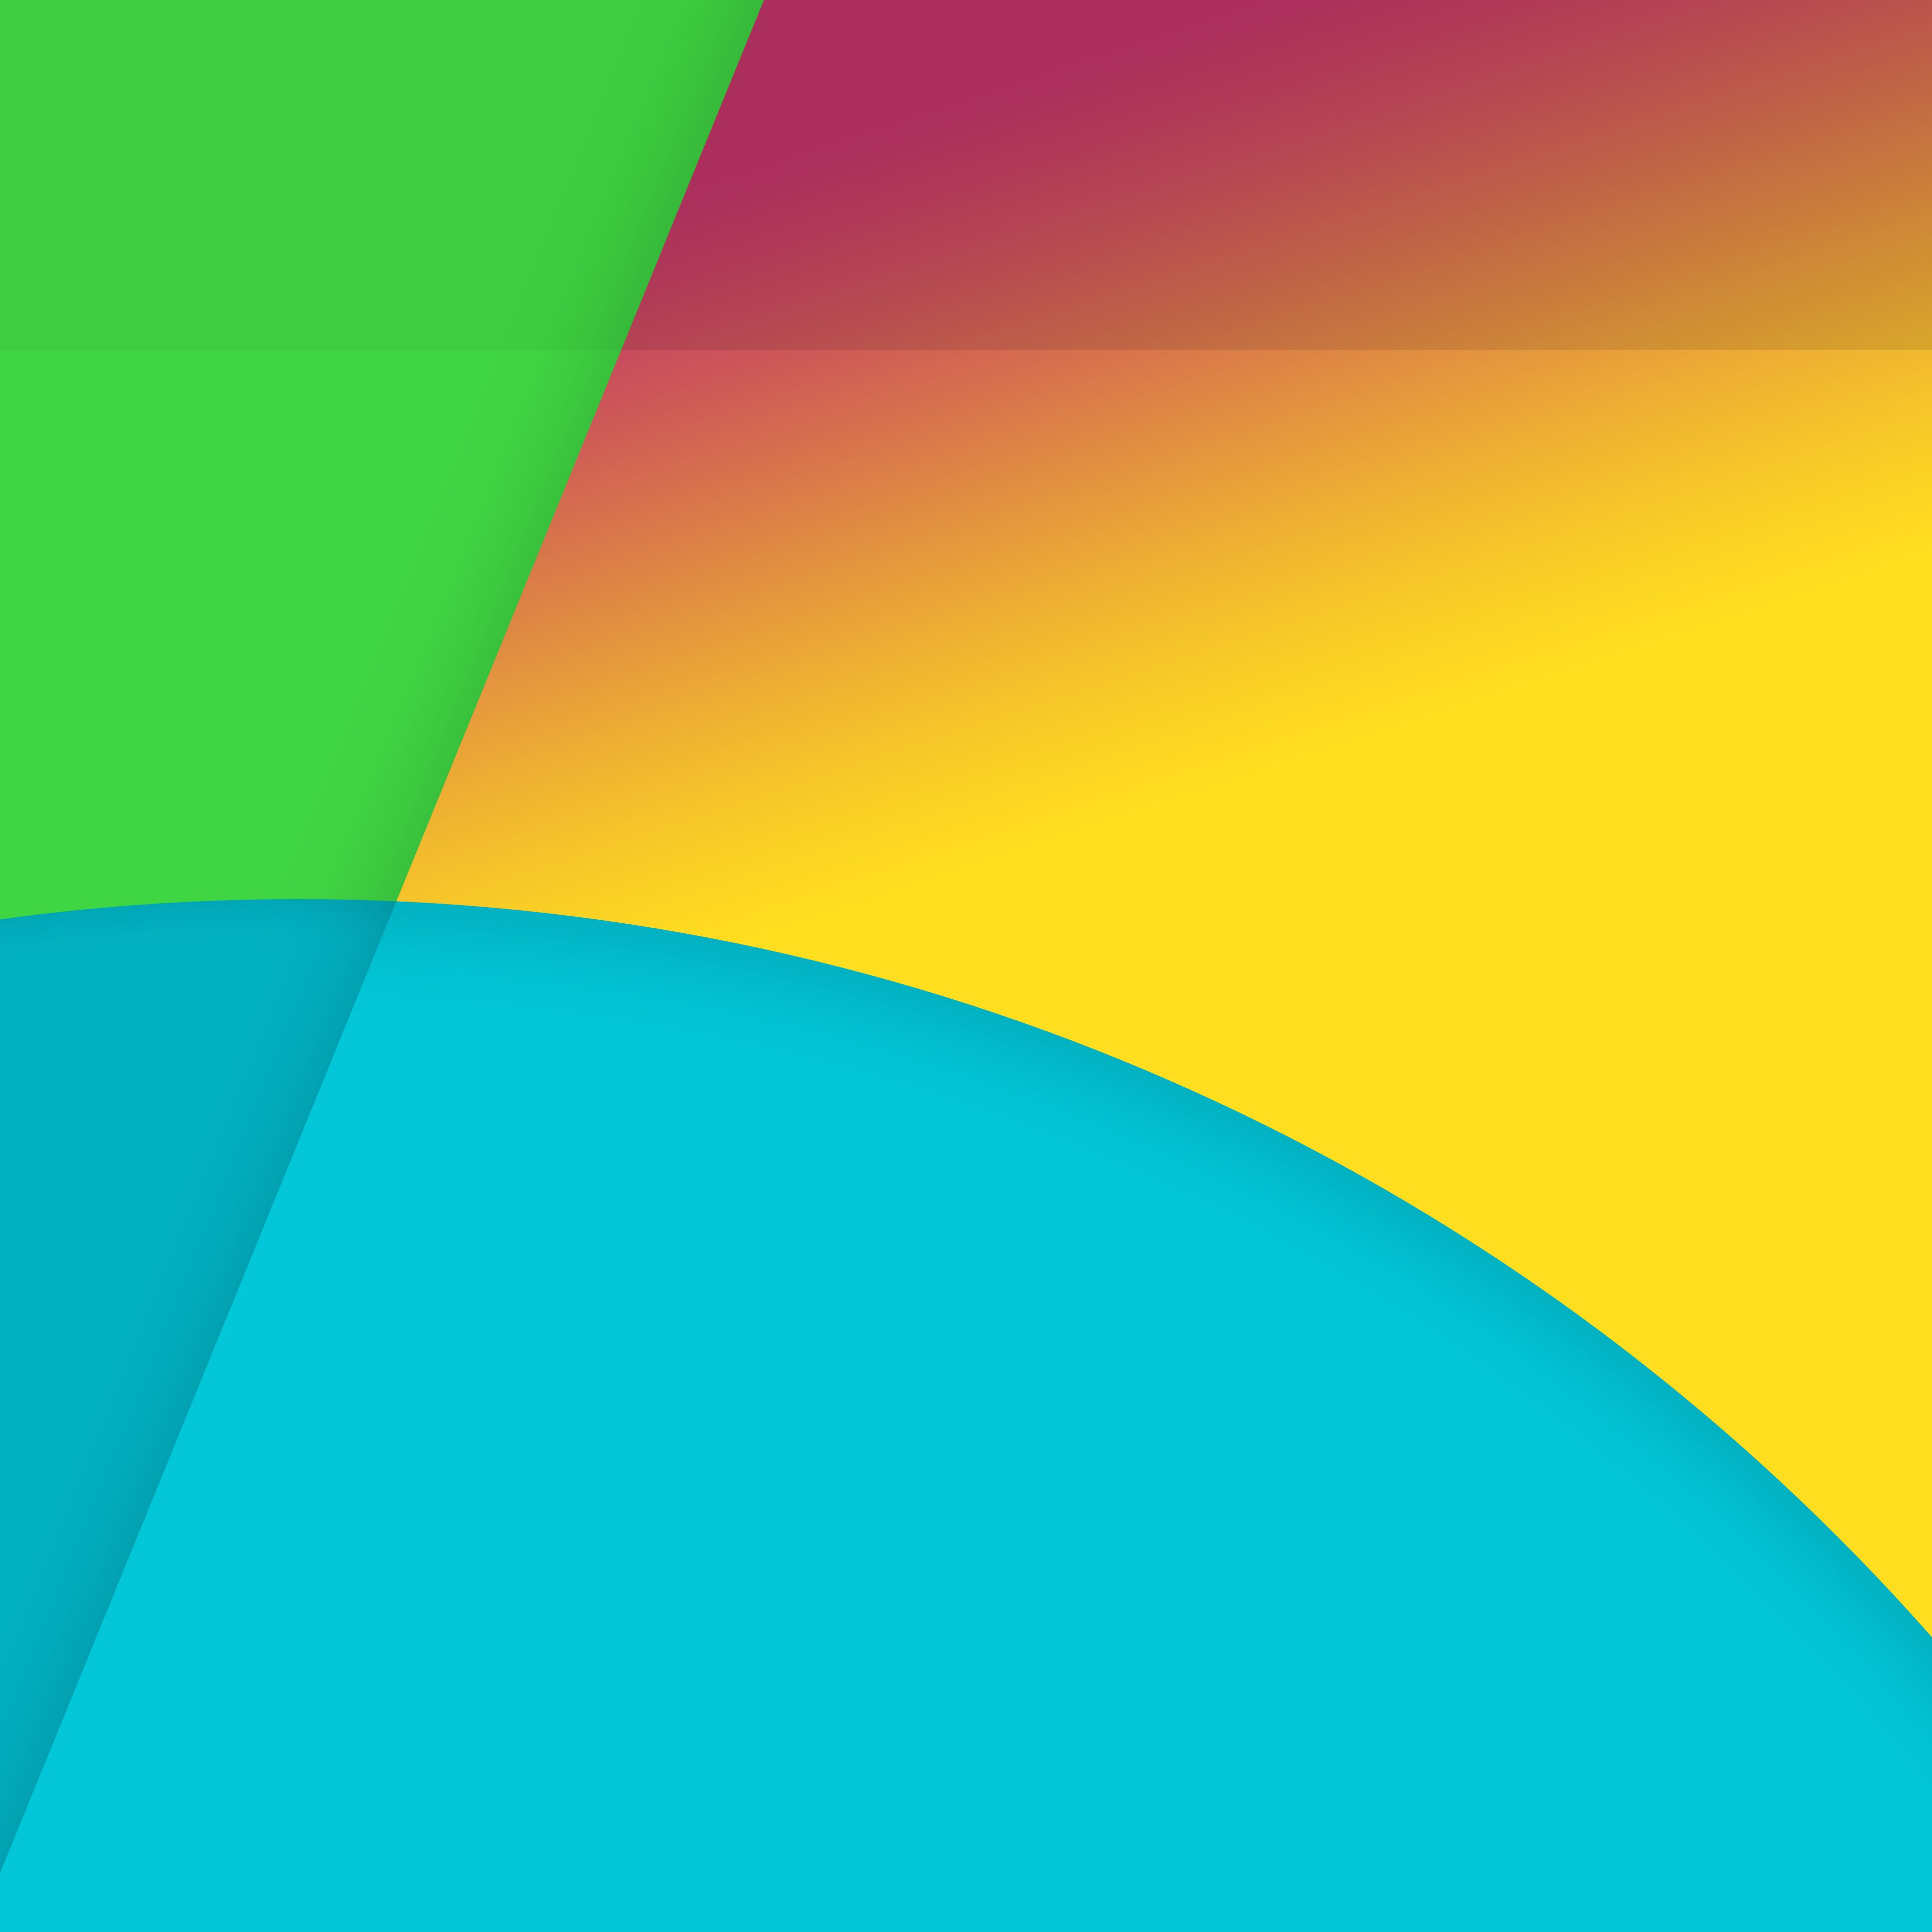 nexus 5 hd wallpapers for free   download here